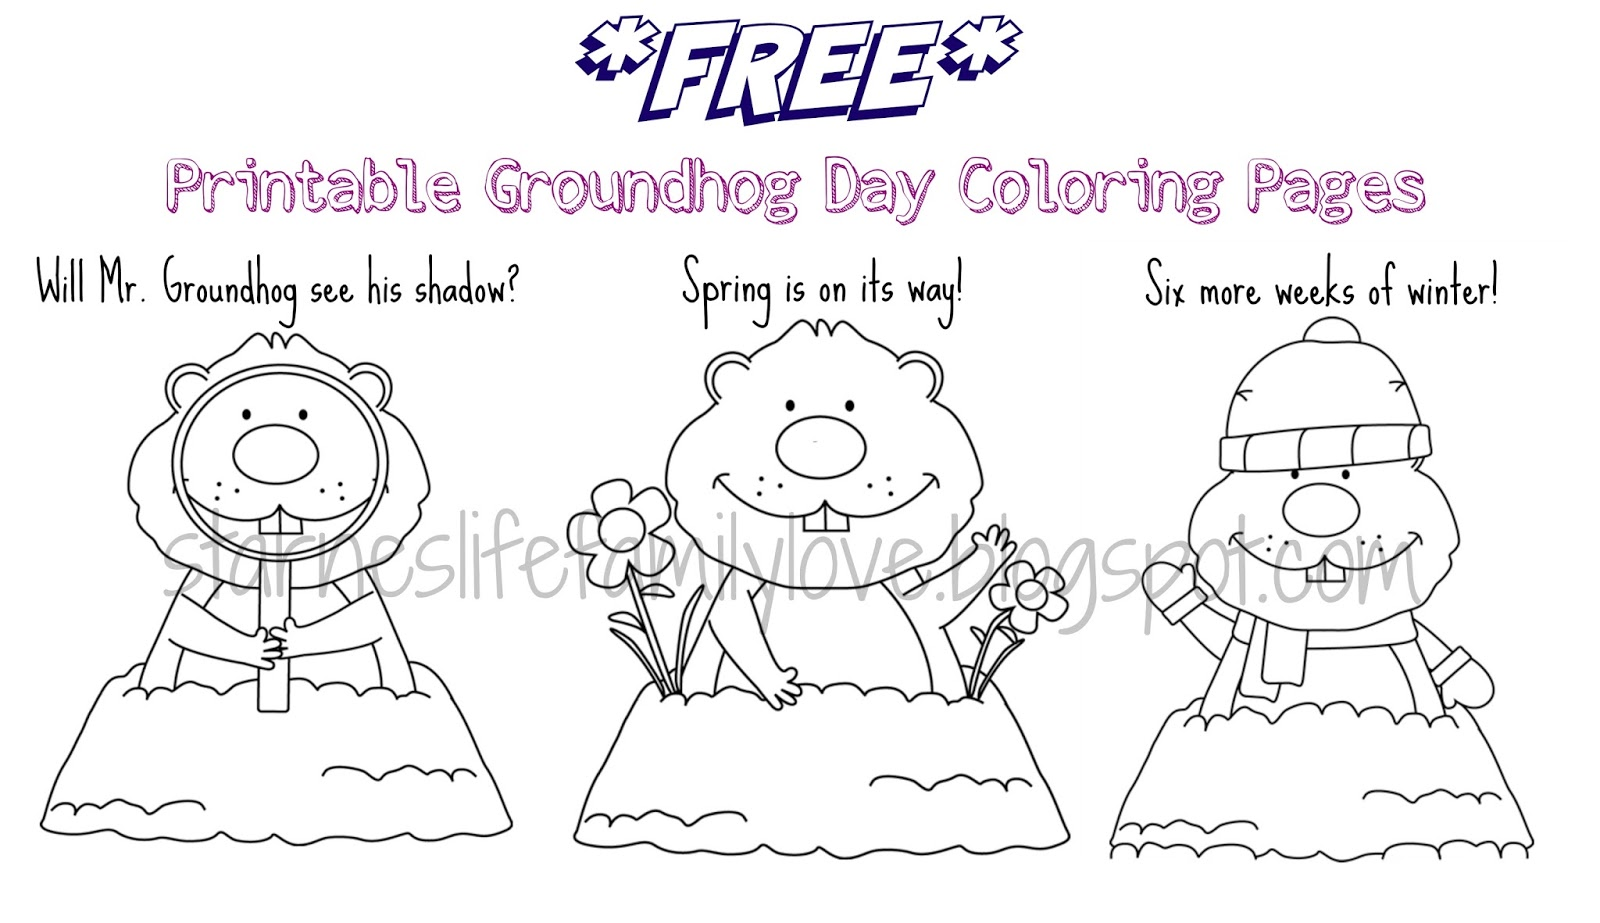 Groundhog Day coloring pages on Coloring-Book.info | 923x1600